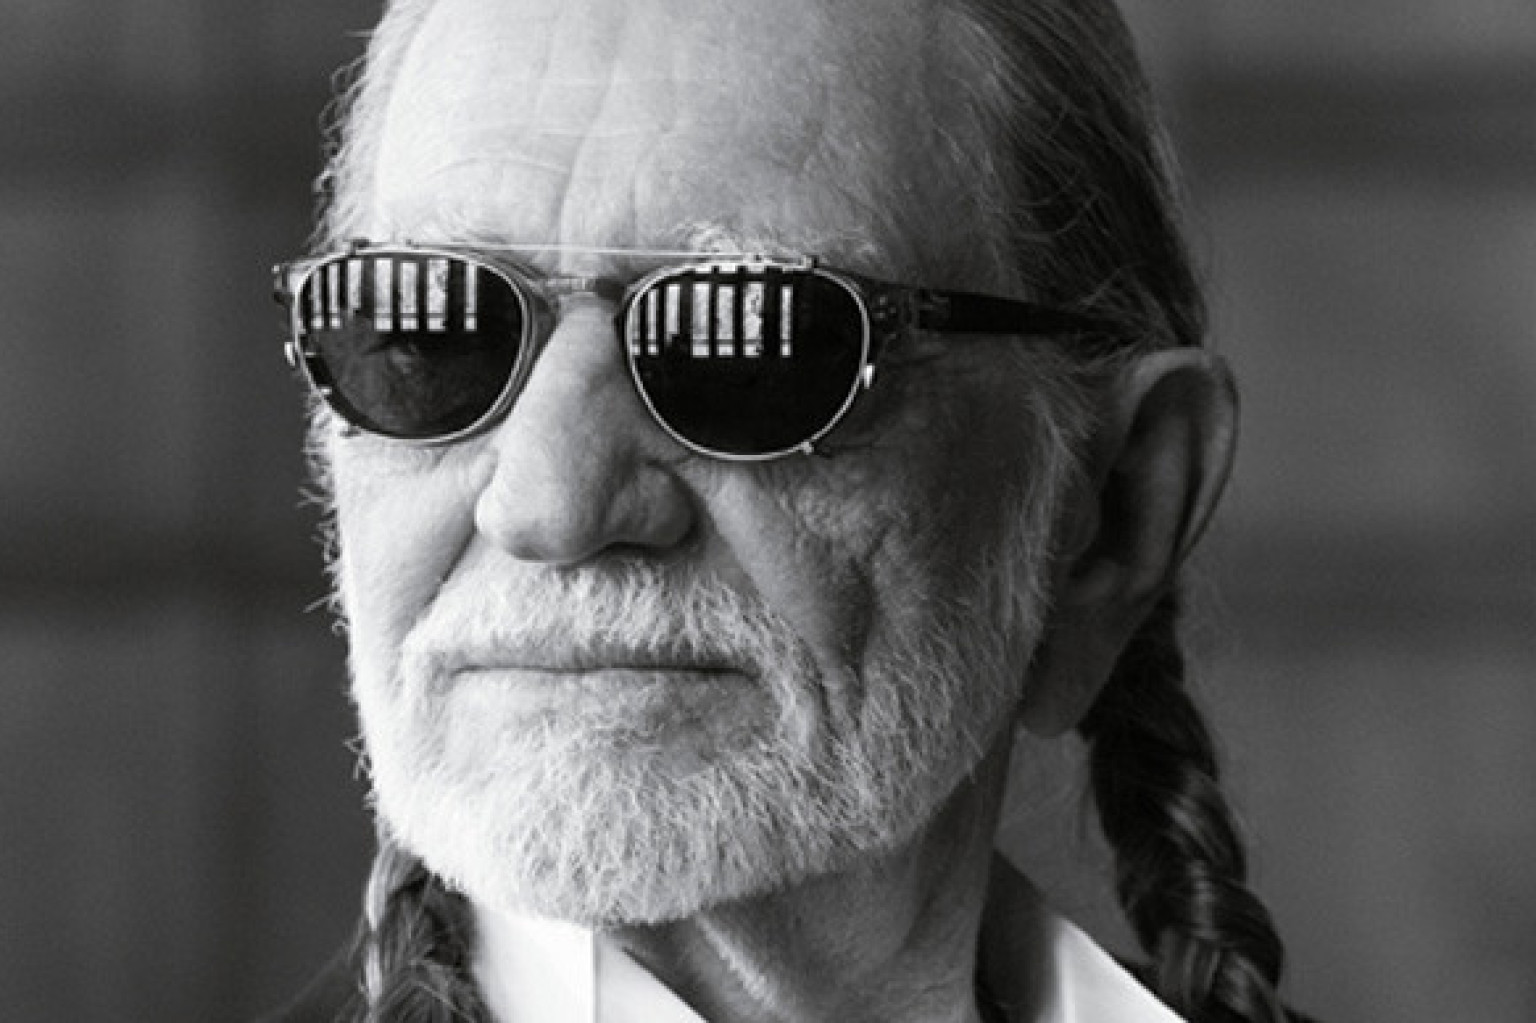 willie nelson on the road again скачатьwillie nelson – the scientist, willie nelson – on the road again, willie nelson - always on my mind, willie nelson – on the road again перевод, willie nelson – the scientist перевод, willie nelson - time of the preacher, willie nelson whiskey river, willie nelson the scientist chords, willie nelson crazy скачать, willie nelson buddy, willie nelson – crazy, willie nelson - summertime, willie nelson are you sure, willie nelson are you sure перевод, willie nelson discography, willie nelson on the road again скачать, willie nelson the scientist lyrics, willie nelson all of me, willie nelson on the road again chords, willie nelson the scientist аккорды